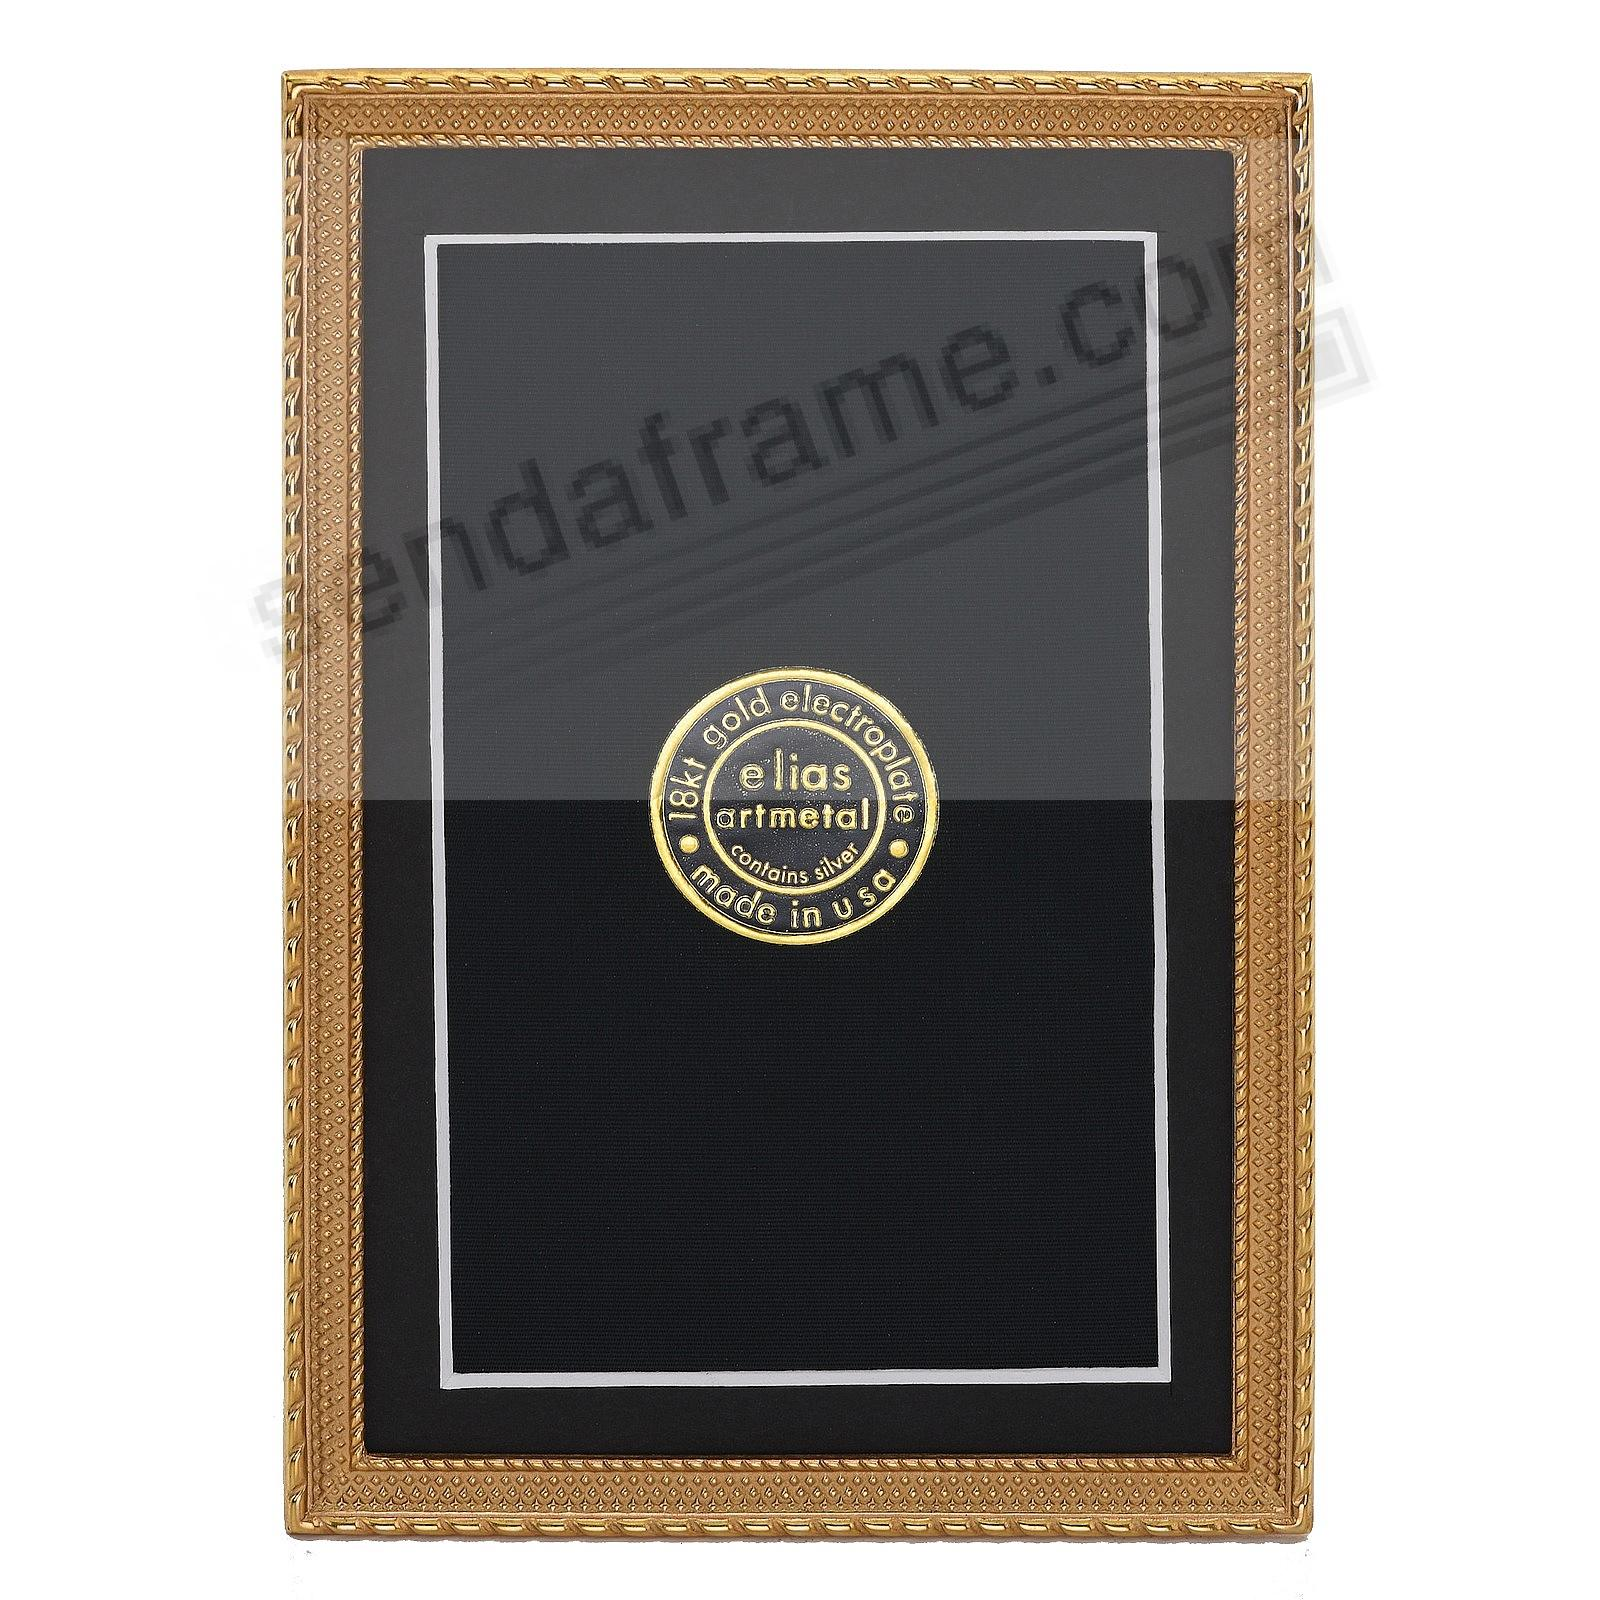 DOT-TO-DOT 18kt Gold Vermeil over fine Pewter 4x6/3½x5½ frame by Elias Artmetal®